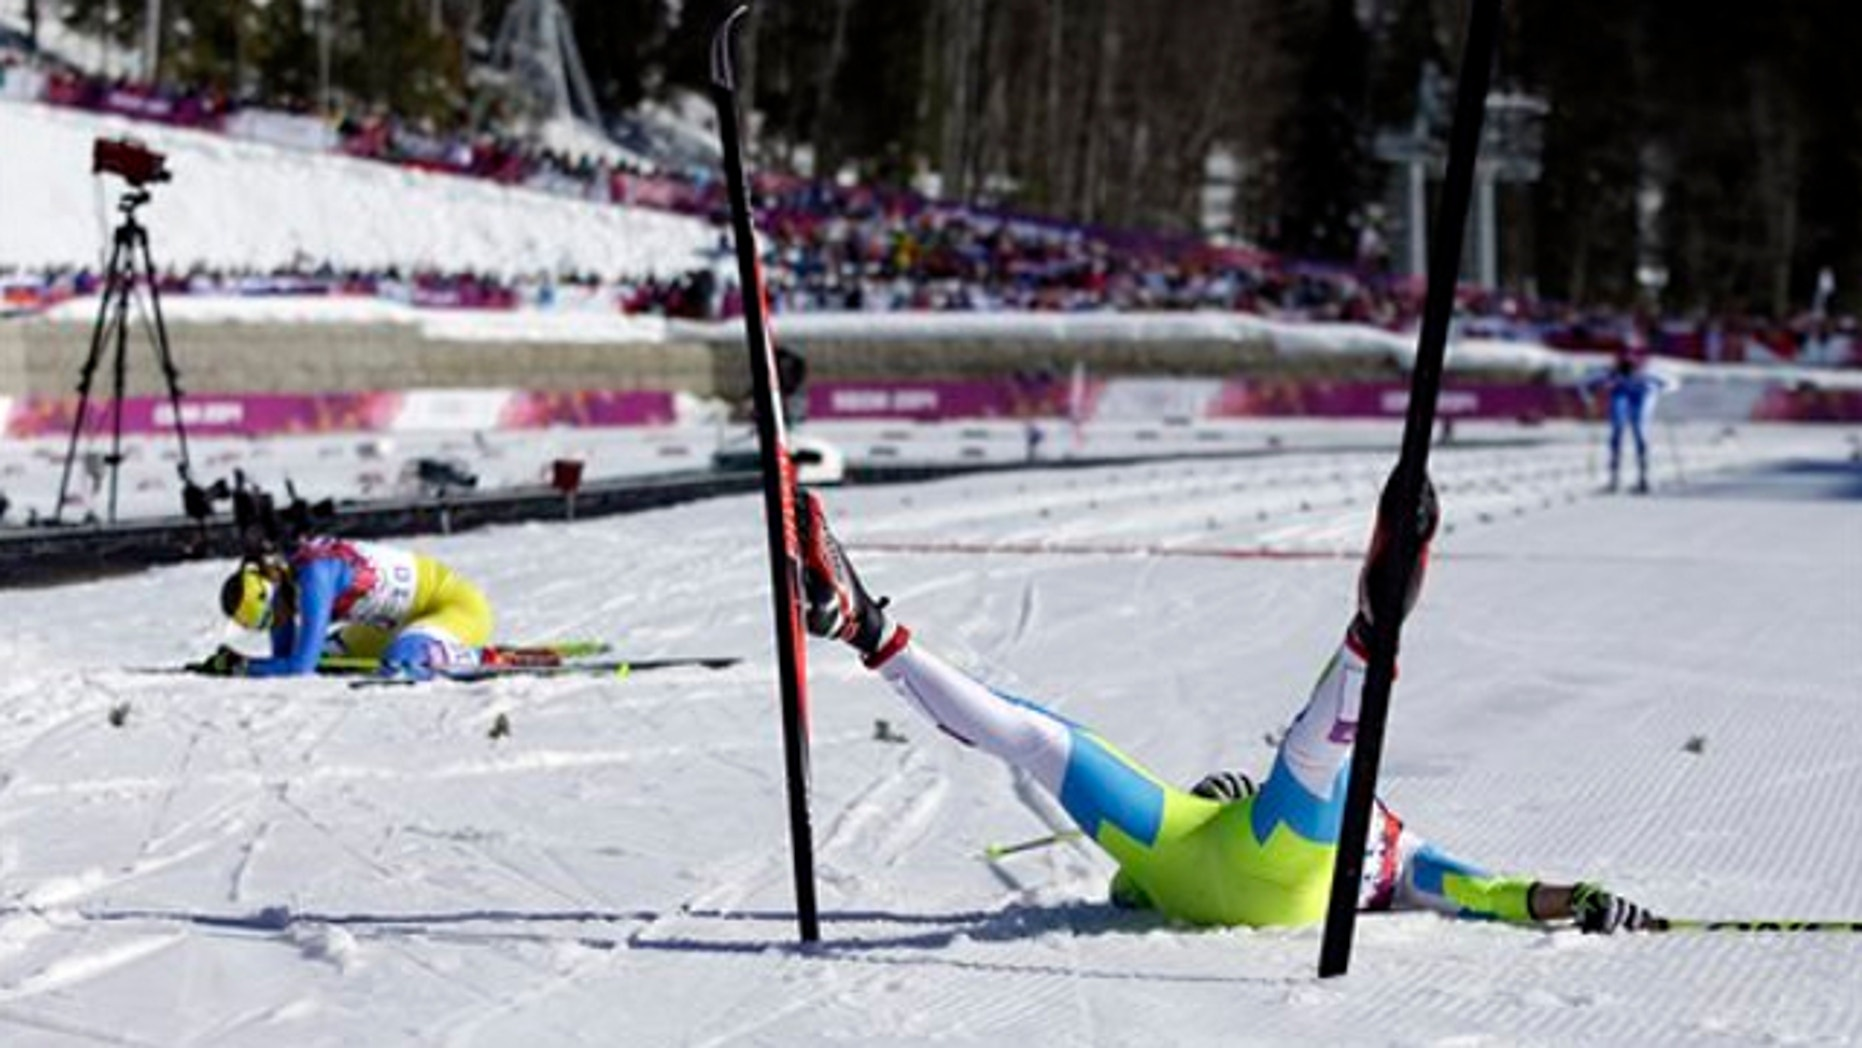 Feb. 13, 2014: Slovenia's Barbara Jezersek, right, and Ukraine's Marina Lisogor lie on the snow after completing the women's 10K classical-style cross-country race at the 2014 Winter Olympics in Krasnaya Polyana, Russia.